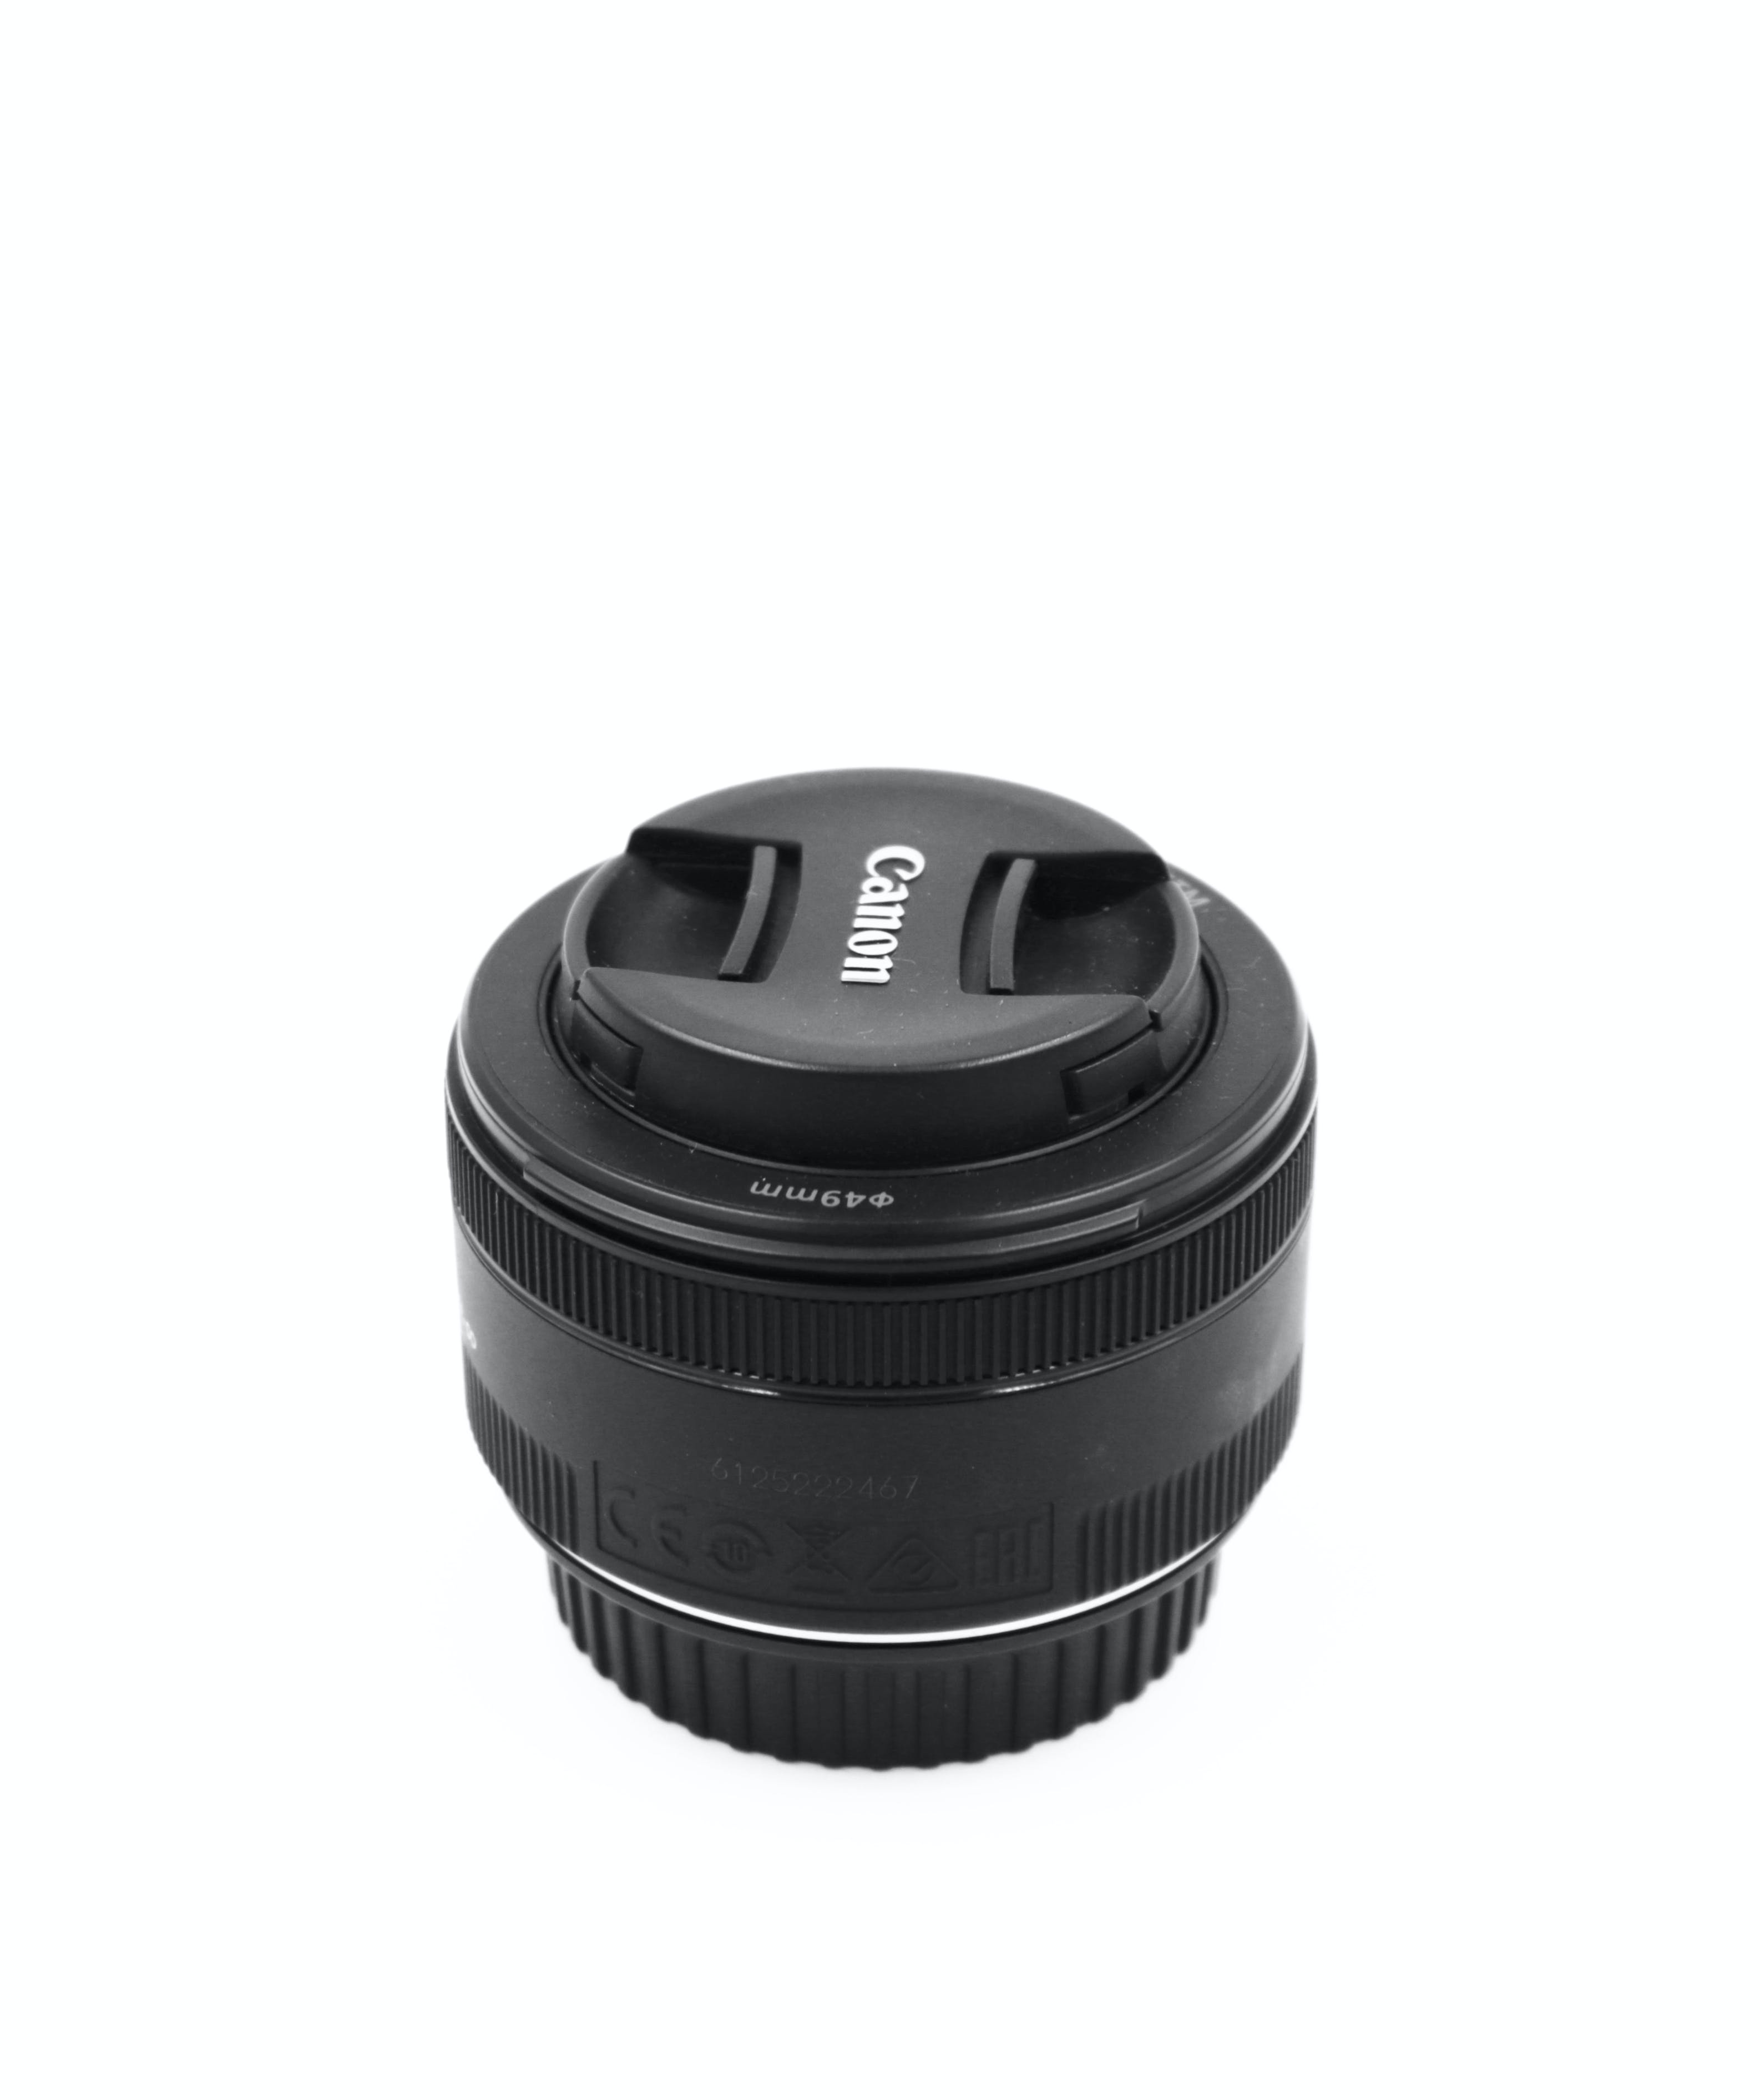 Free stock photo of 50mm, black, black and white, camera lens